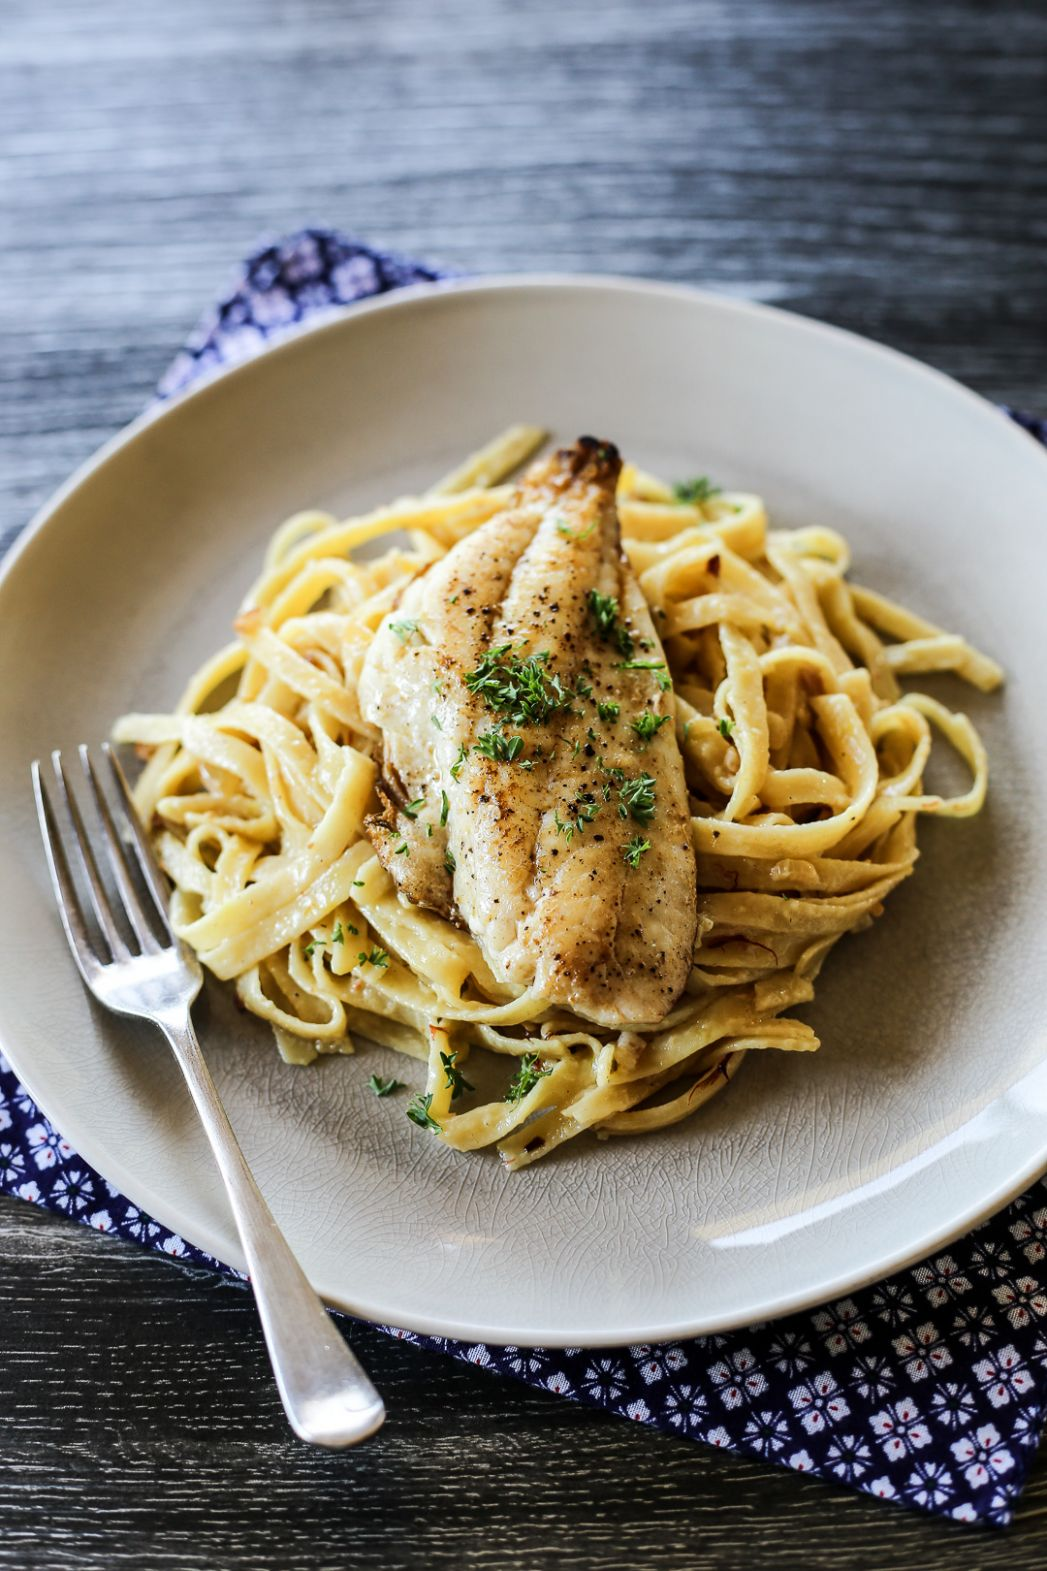 Pan Fried Fish and Saffron Cream Pasta - Recipes Fish Pasta